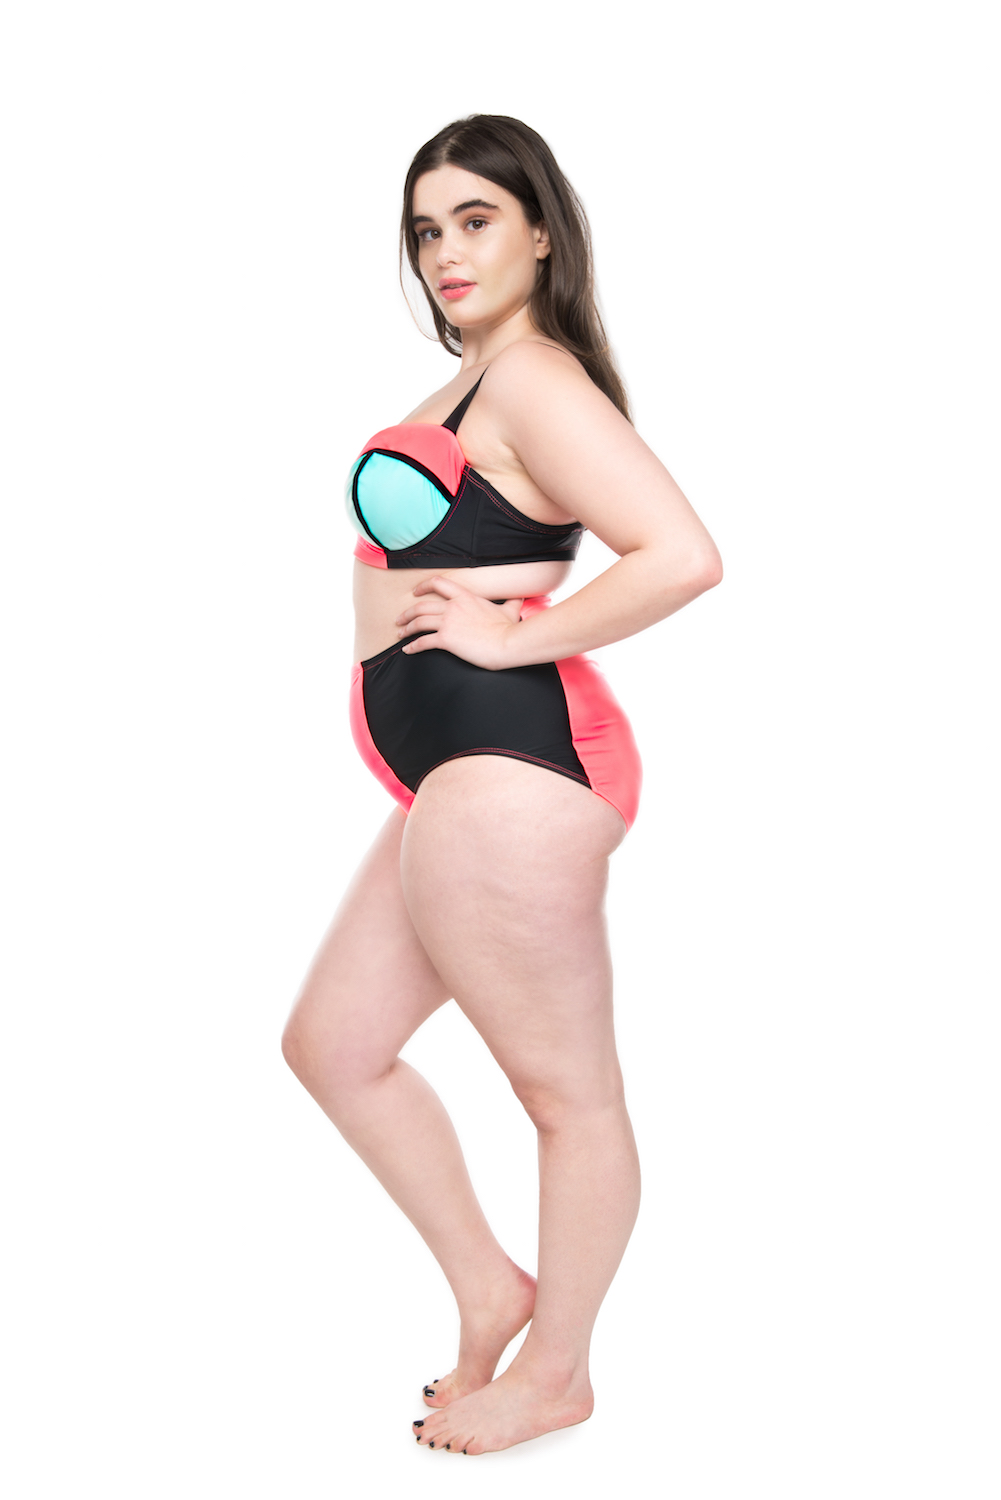 Amiclubwear offers the sexiest high waisted bikinis and high waist swimwear for the lowest prices on the internet. If you want cheap high waisted swimsuits that are high quality and will last a long time check out AMI brand women's swimsuits!